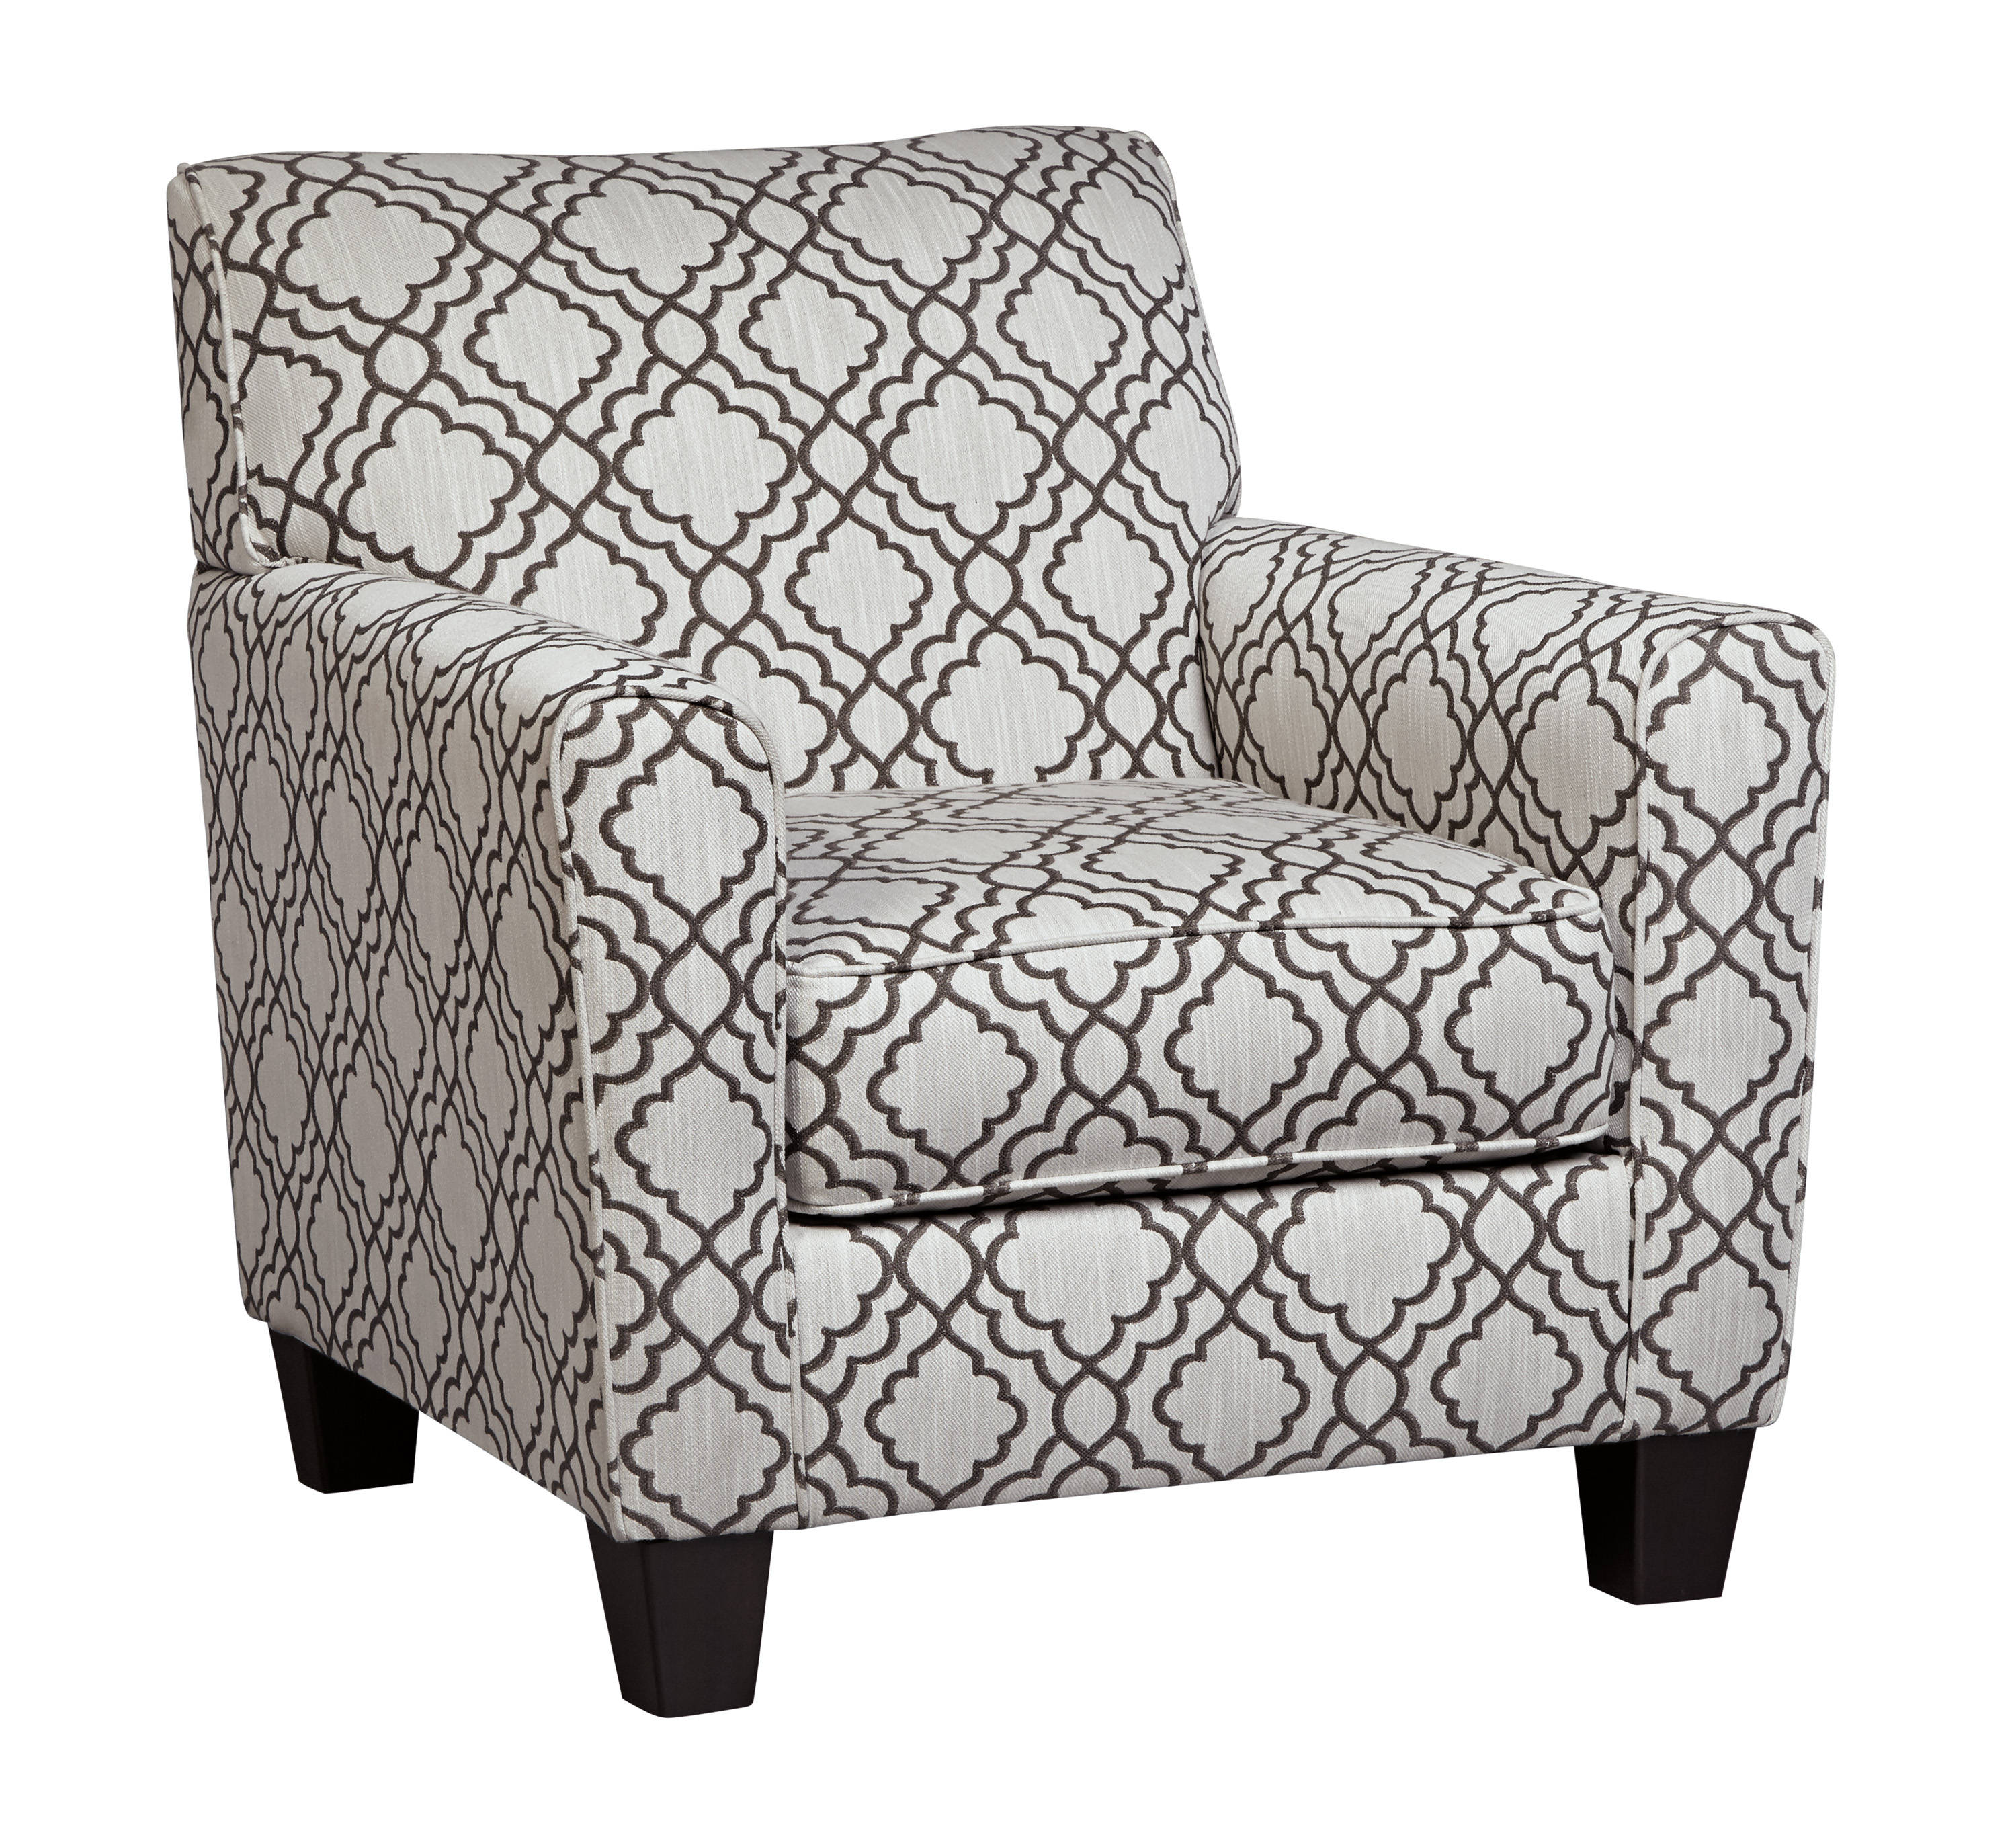 Ashley Furniture Farouh Pearl Accent Chair The Classy Home